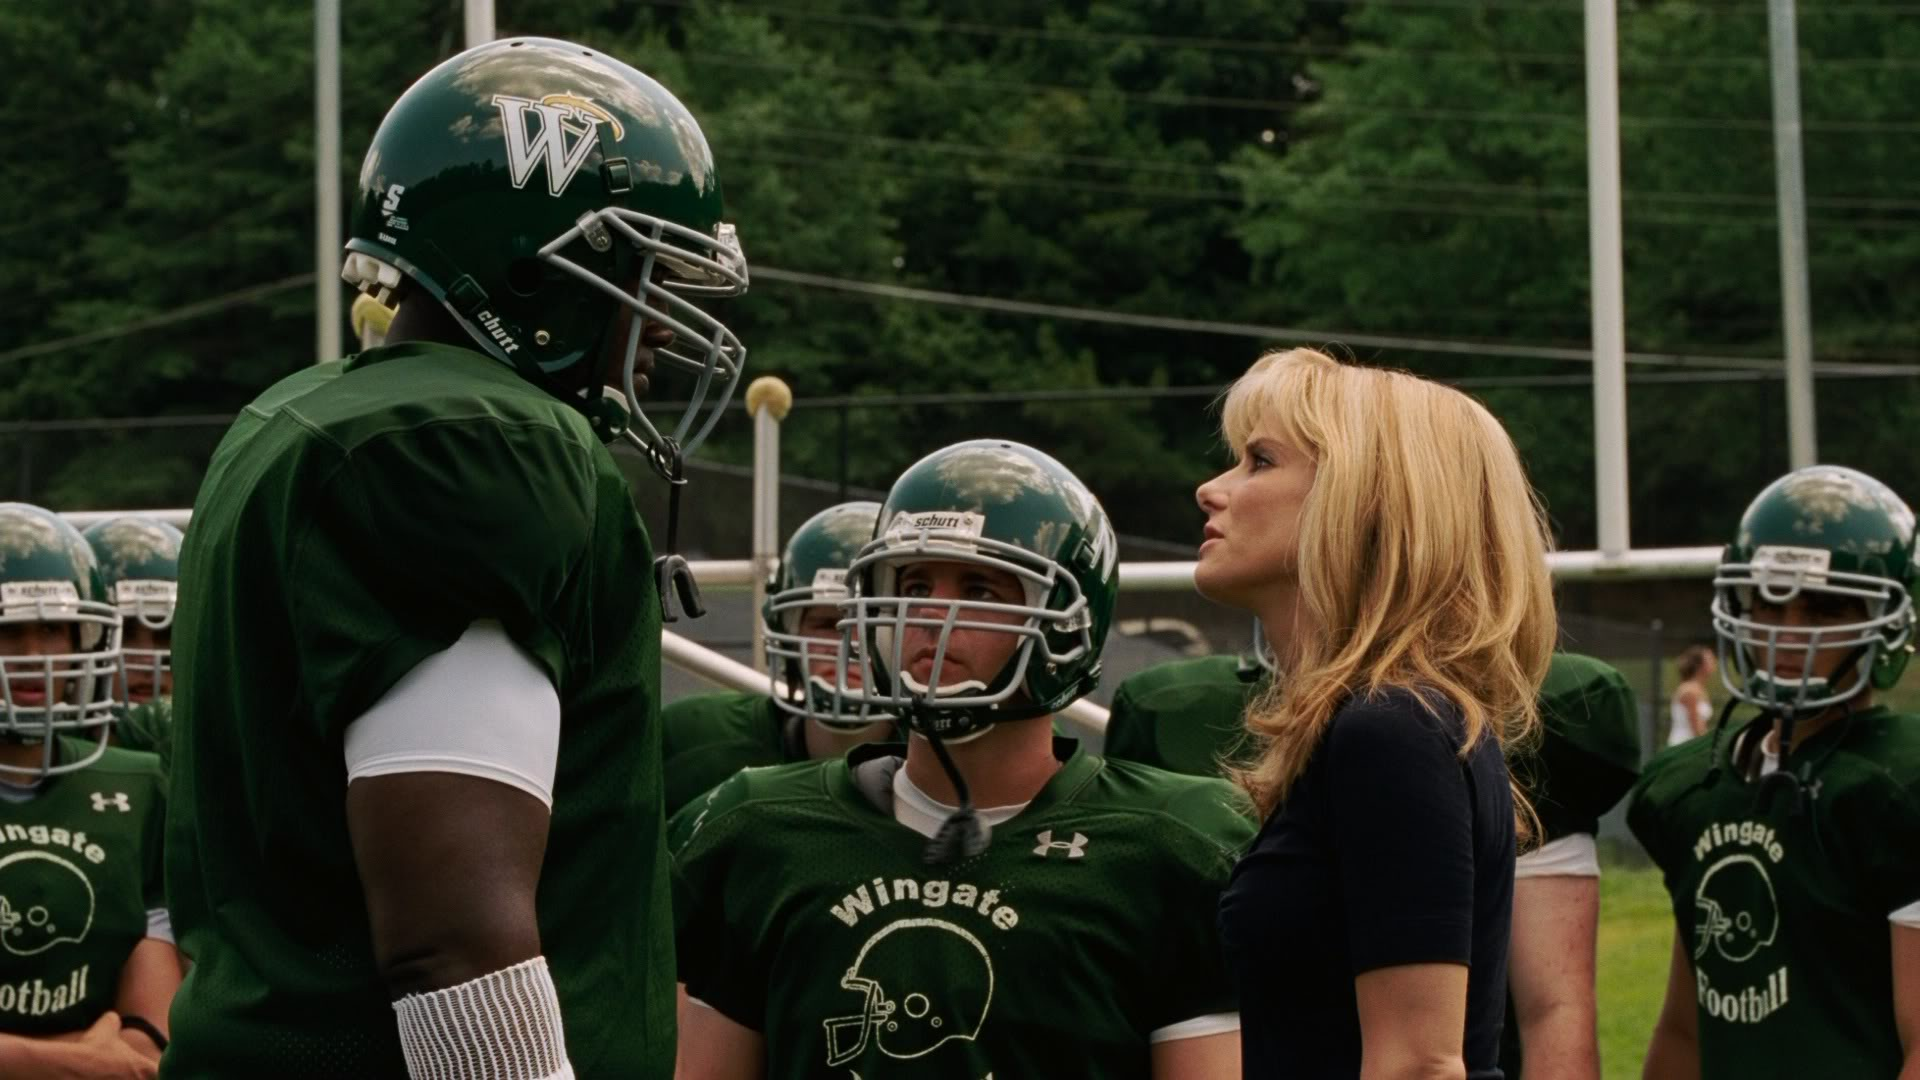 film critique the blind side The blind side (2009) on imdb: movies, tv, celebs, and more was this review helpful in the fact-based film the blind side, a burly homeless black teenager michael oher (quinton aaron) is taken in by the family of leigh anne tuohy (sandra bullock), a spunky white christian mother of two and assisted through.